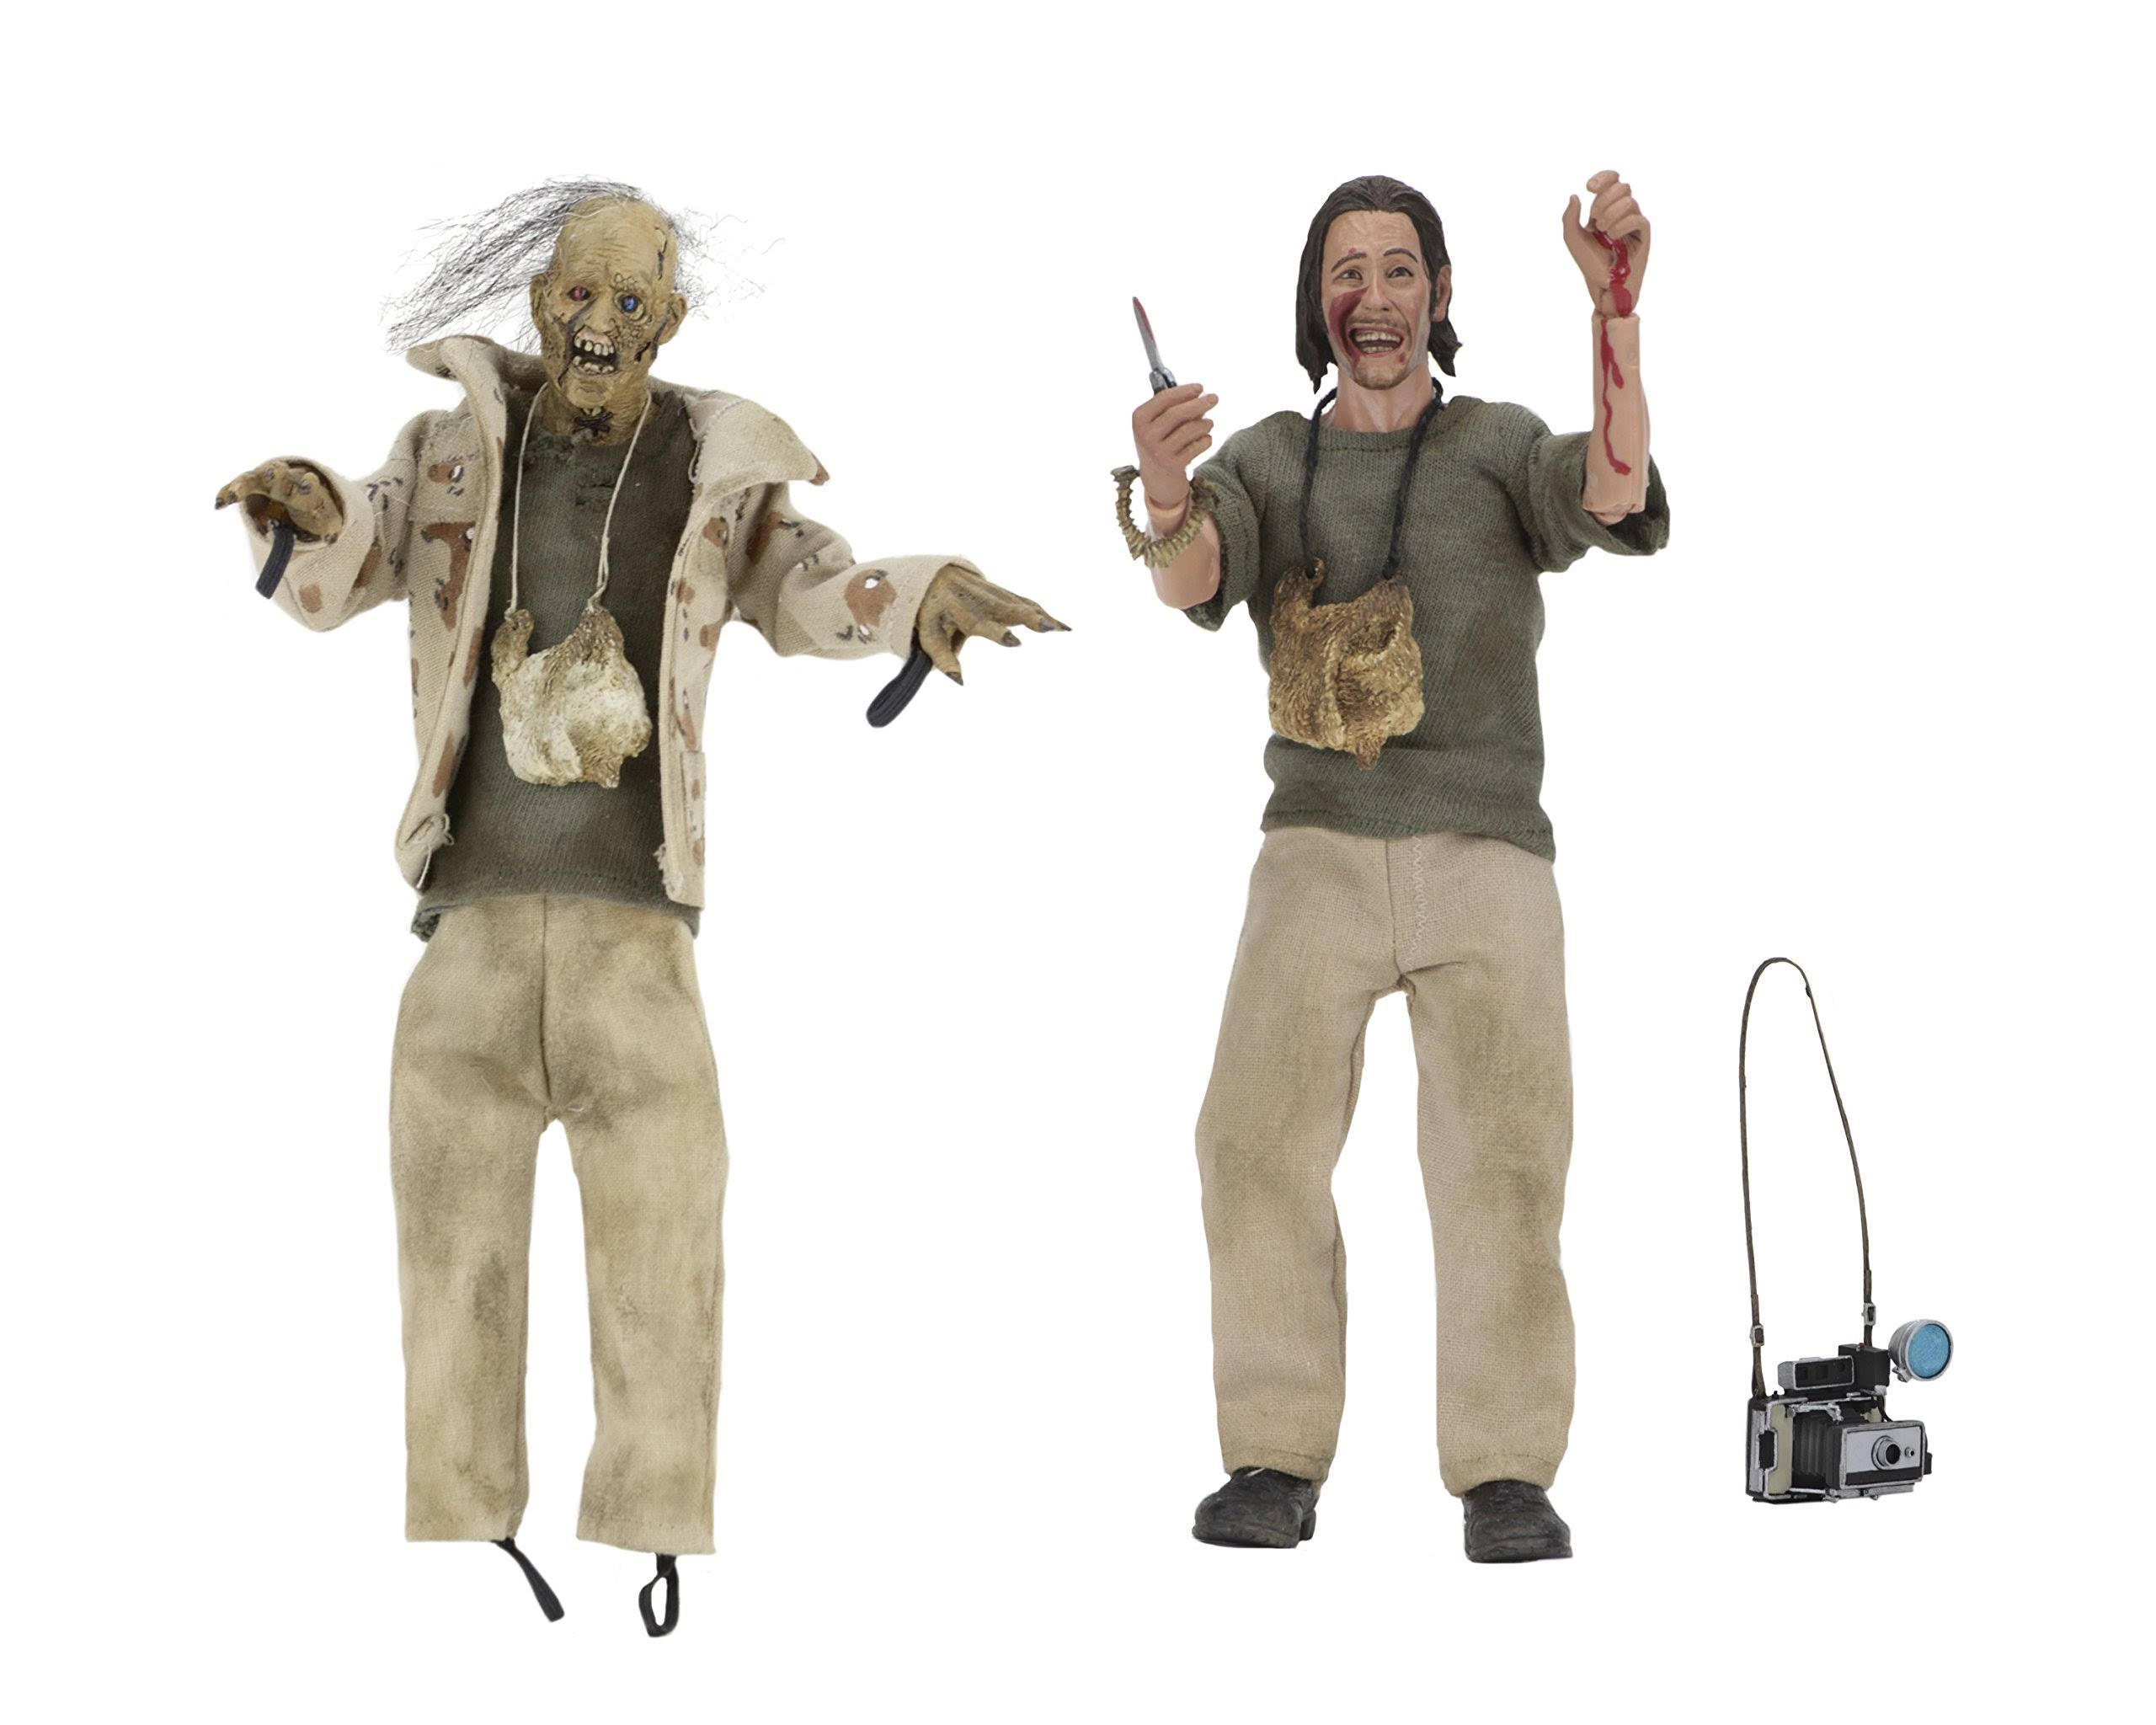 Texas Chainsaw Massacre 8 inch Action Figure Clothed Series - Nubbins Sawyer Set